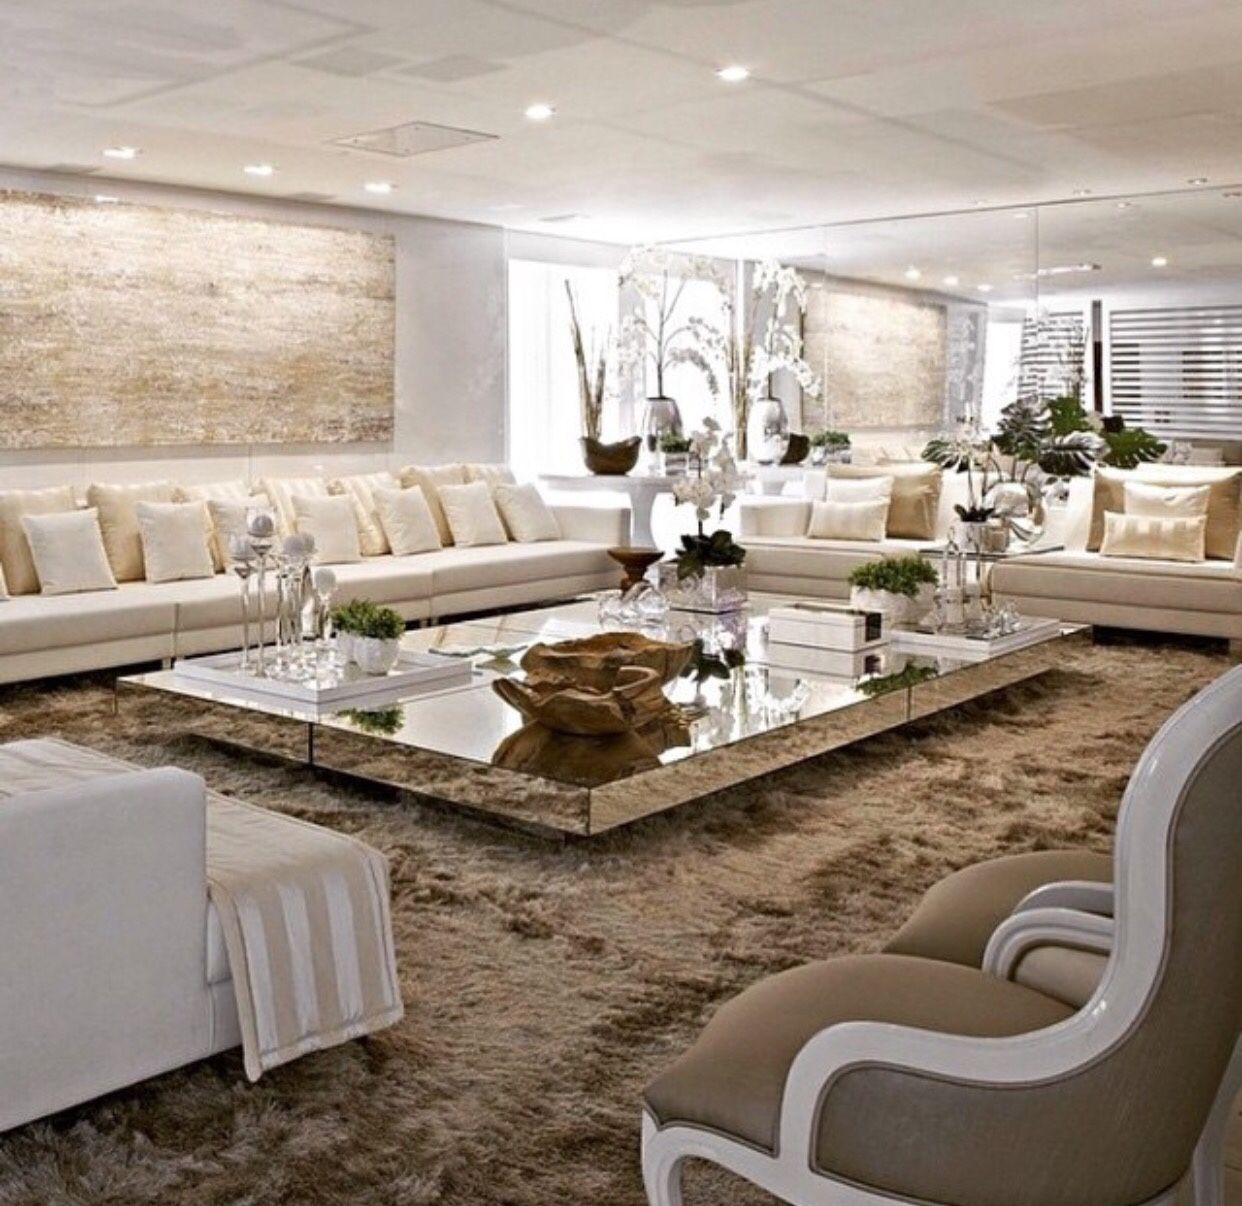 Living Room Luxury Designs Decor Stunning Love The Coffee Table  Wishful Thinking Things I Would Love To . Design Inspiration